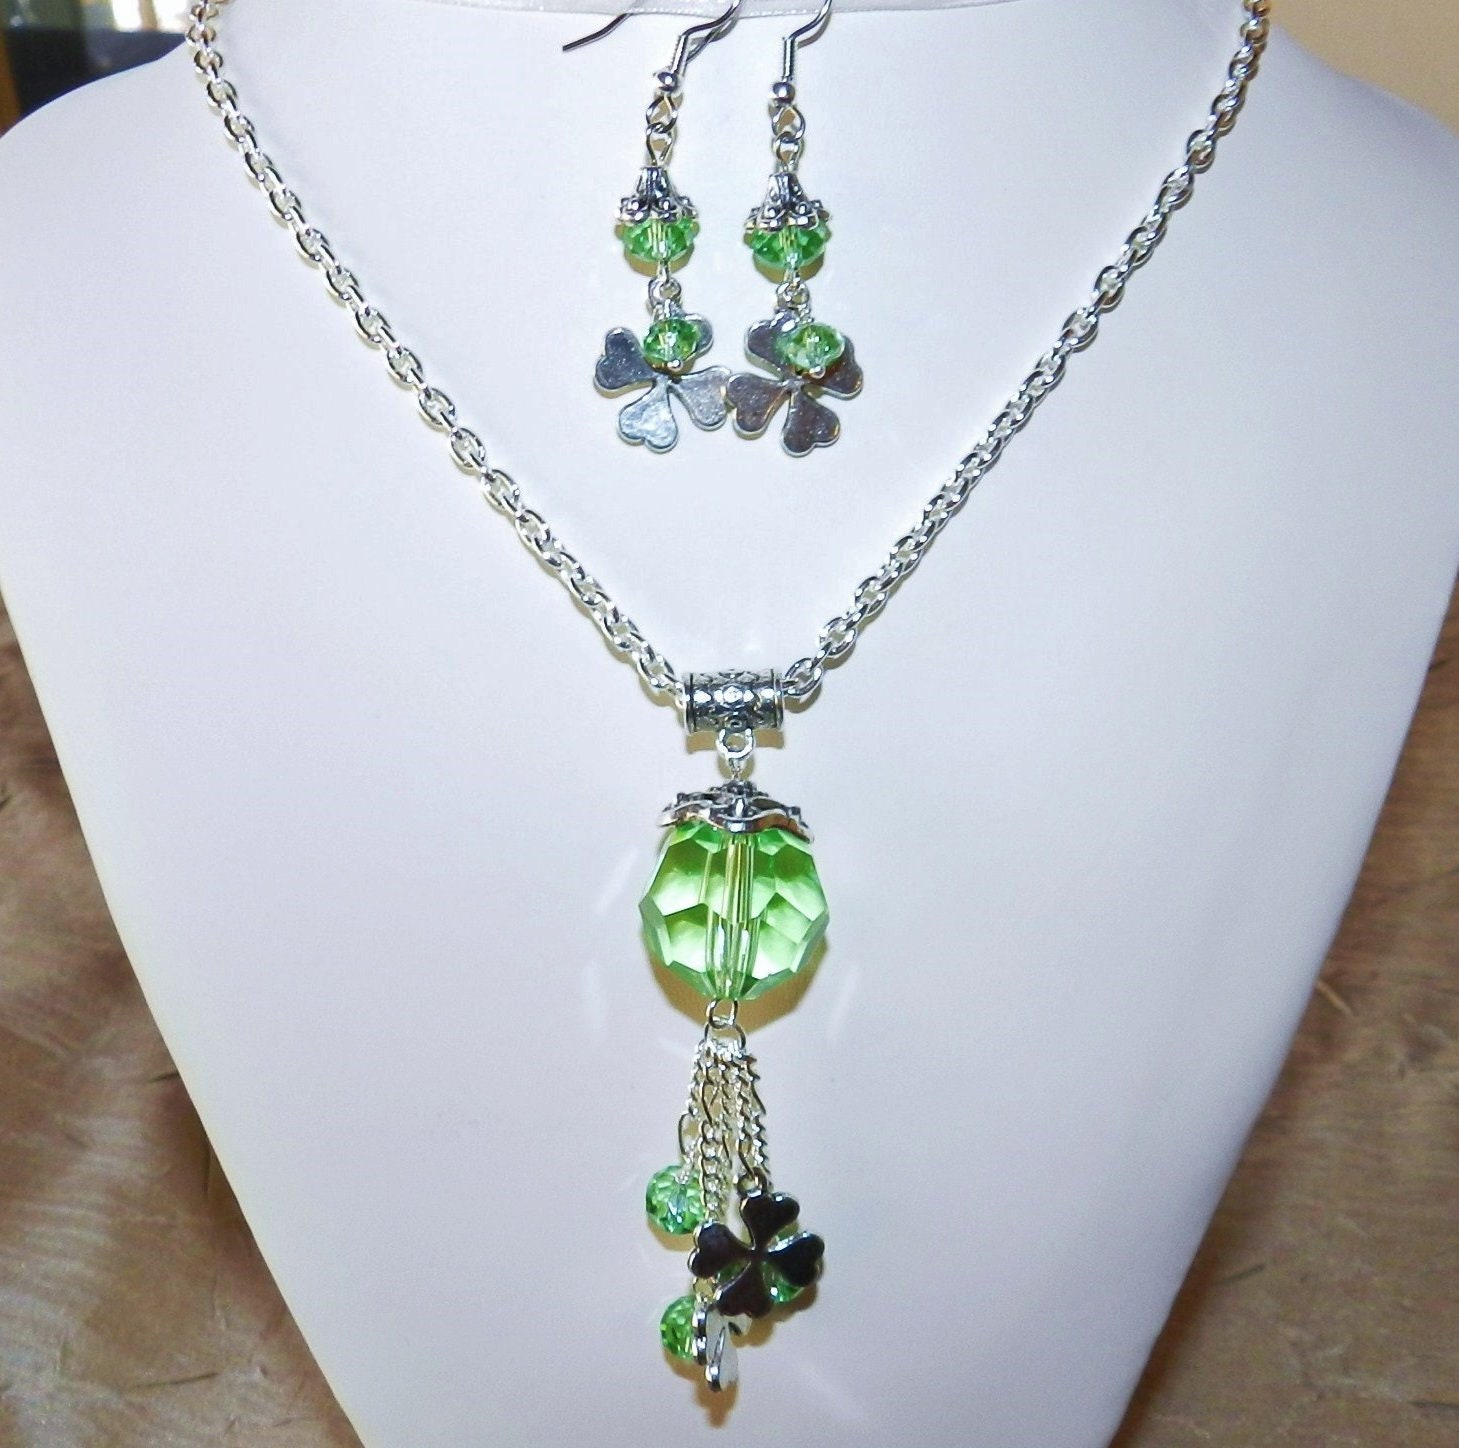 Saint,Patrick's,Day,Necklace,and,Earring,Set,Jewelry,Green_necklace,green_crystal,St_Patrick's_day,Saint_Patrick's_Day,Tassel_necklace,shamrock_charms,shamrock_necklace,shamrock_jewelry,Irish_jewelry,Lucky_Clover,St_Paddys_day,4_leaf_clover,Glass